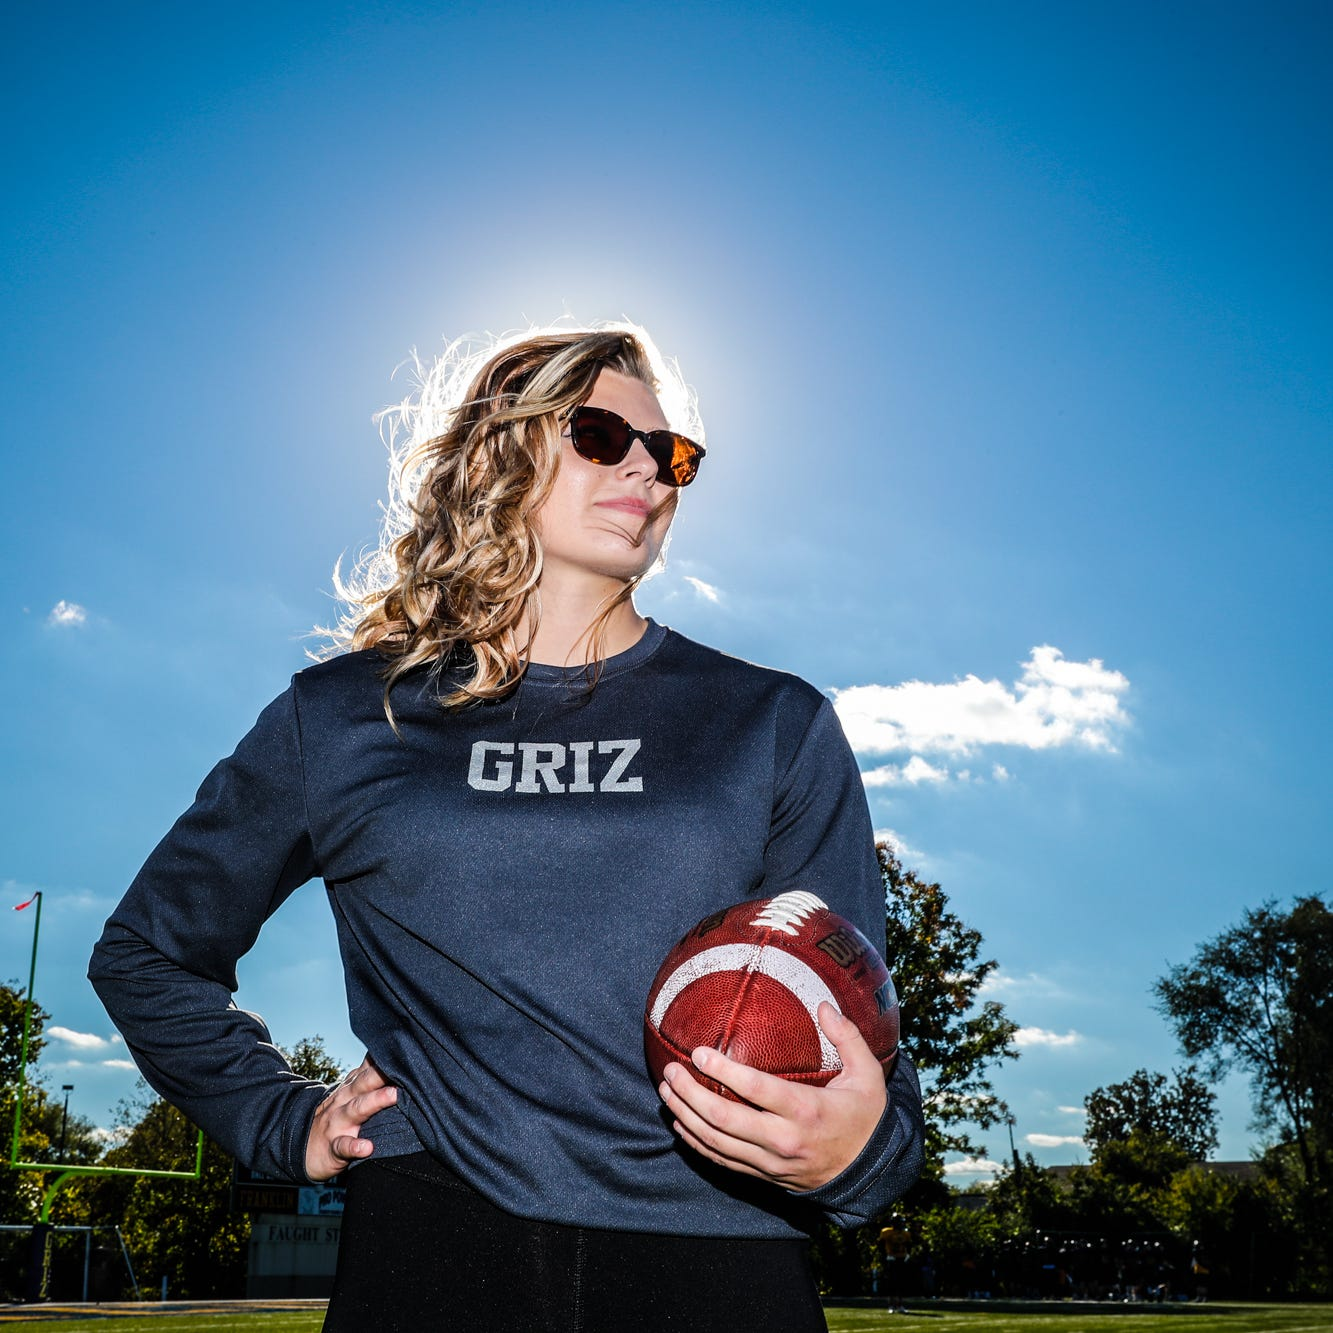 Cheerleader turned defensive back hopes to play football at Franklin College